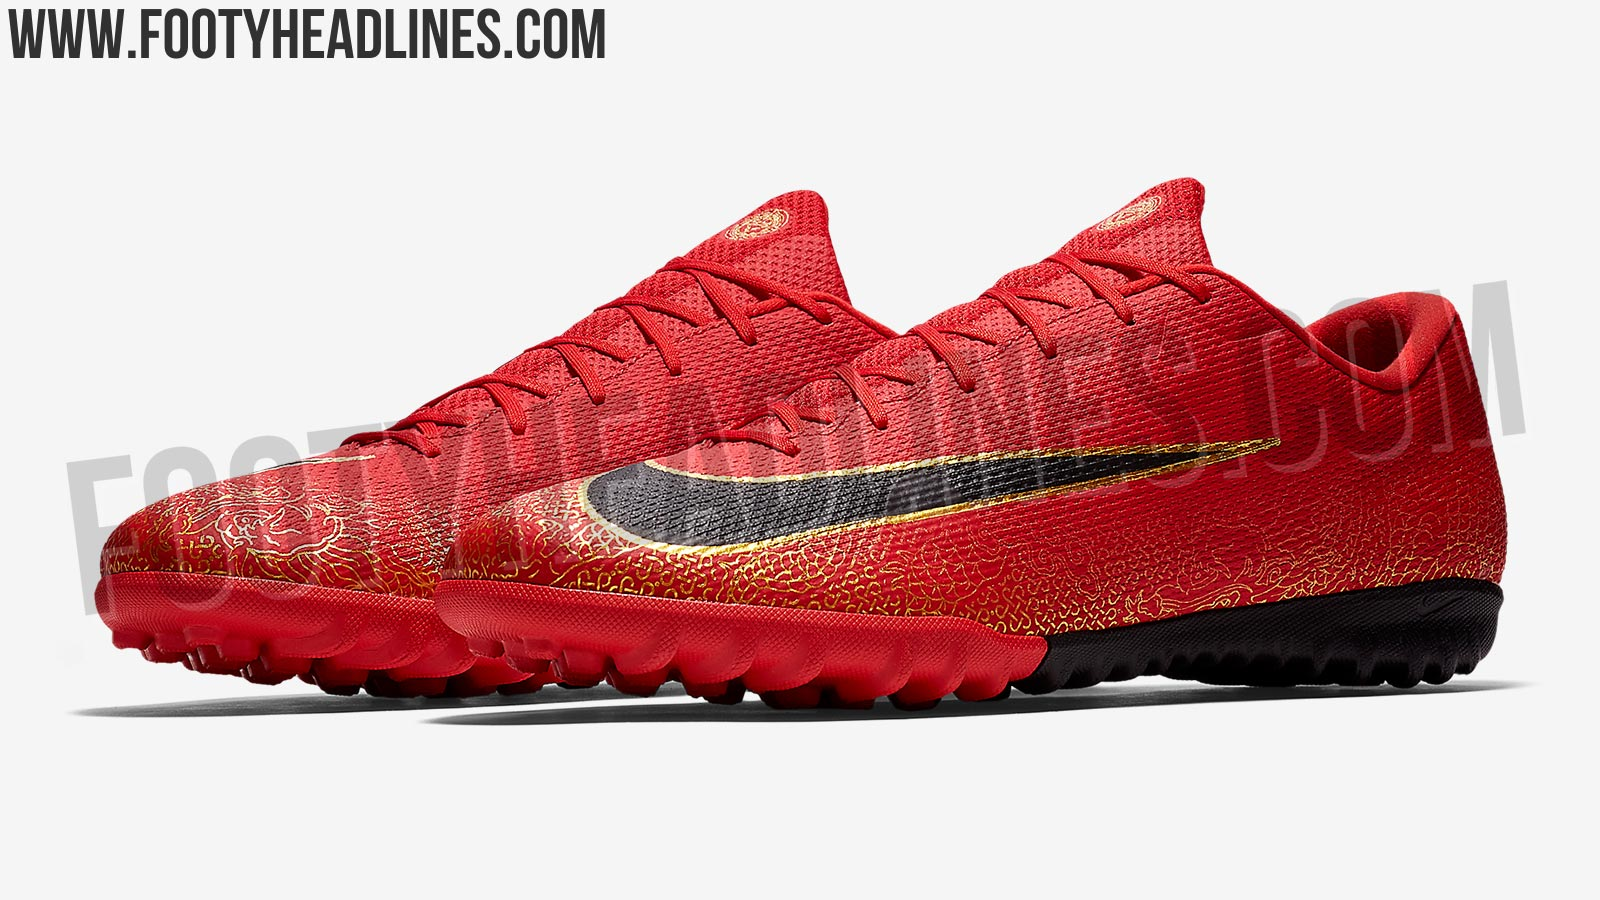 EXCLUSIVE  Red   Black   Gold Nike Mercurial Cristiano Ronaldo Boots ... 745cb836fc68